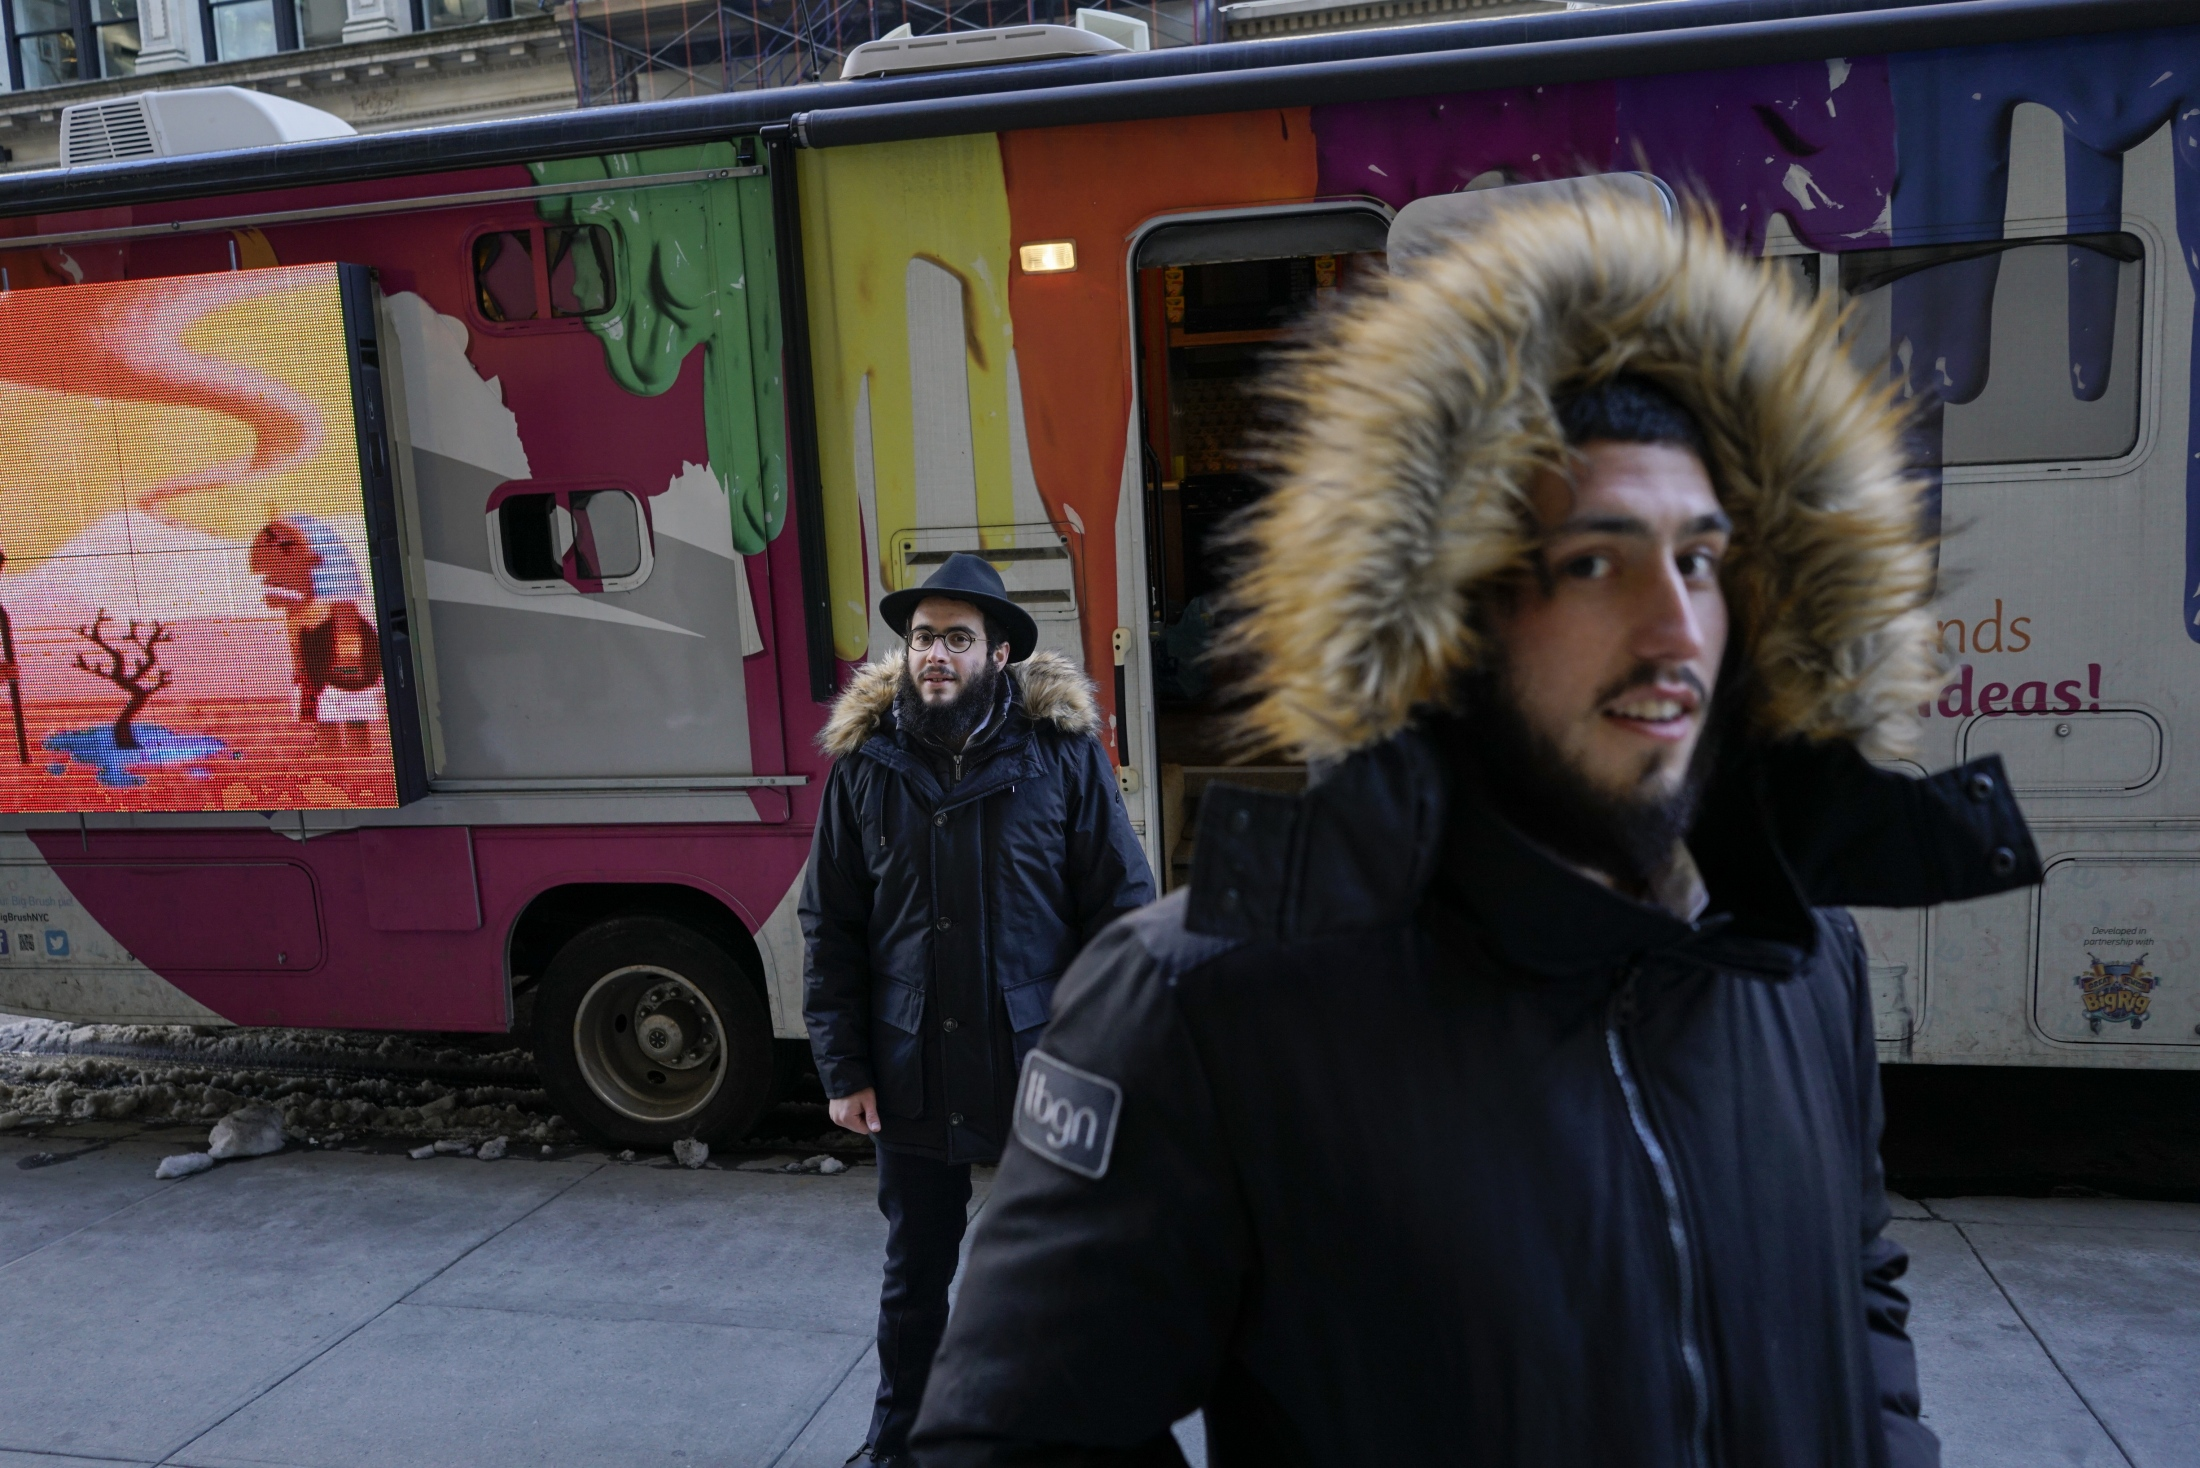 Most of their day is spent in the 'Mitzvah Tank' caravans that park around the city giving people the opportunity to connect with their Jewish faith as a means of getting closer to God.